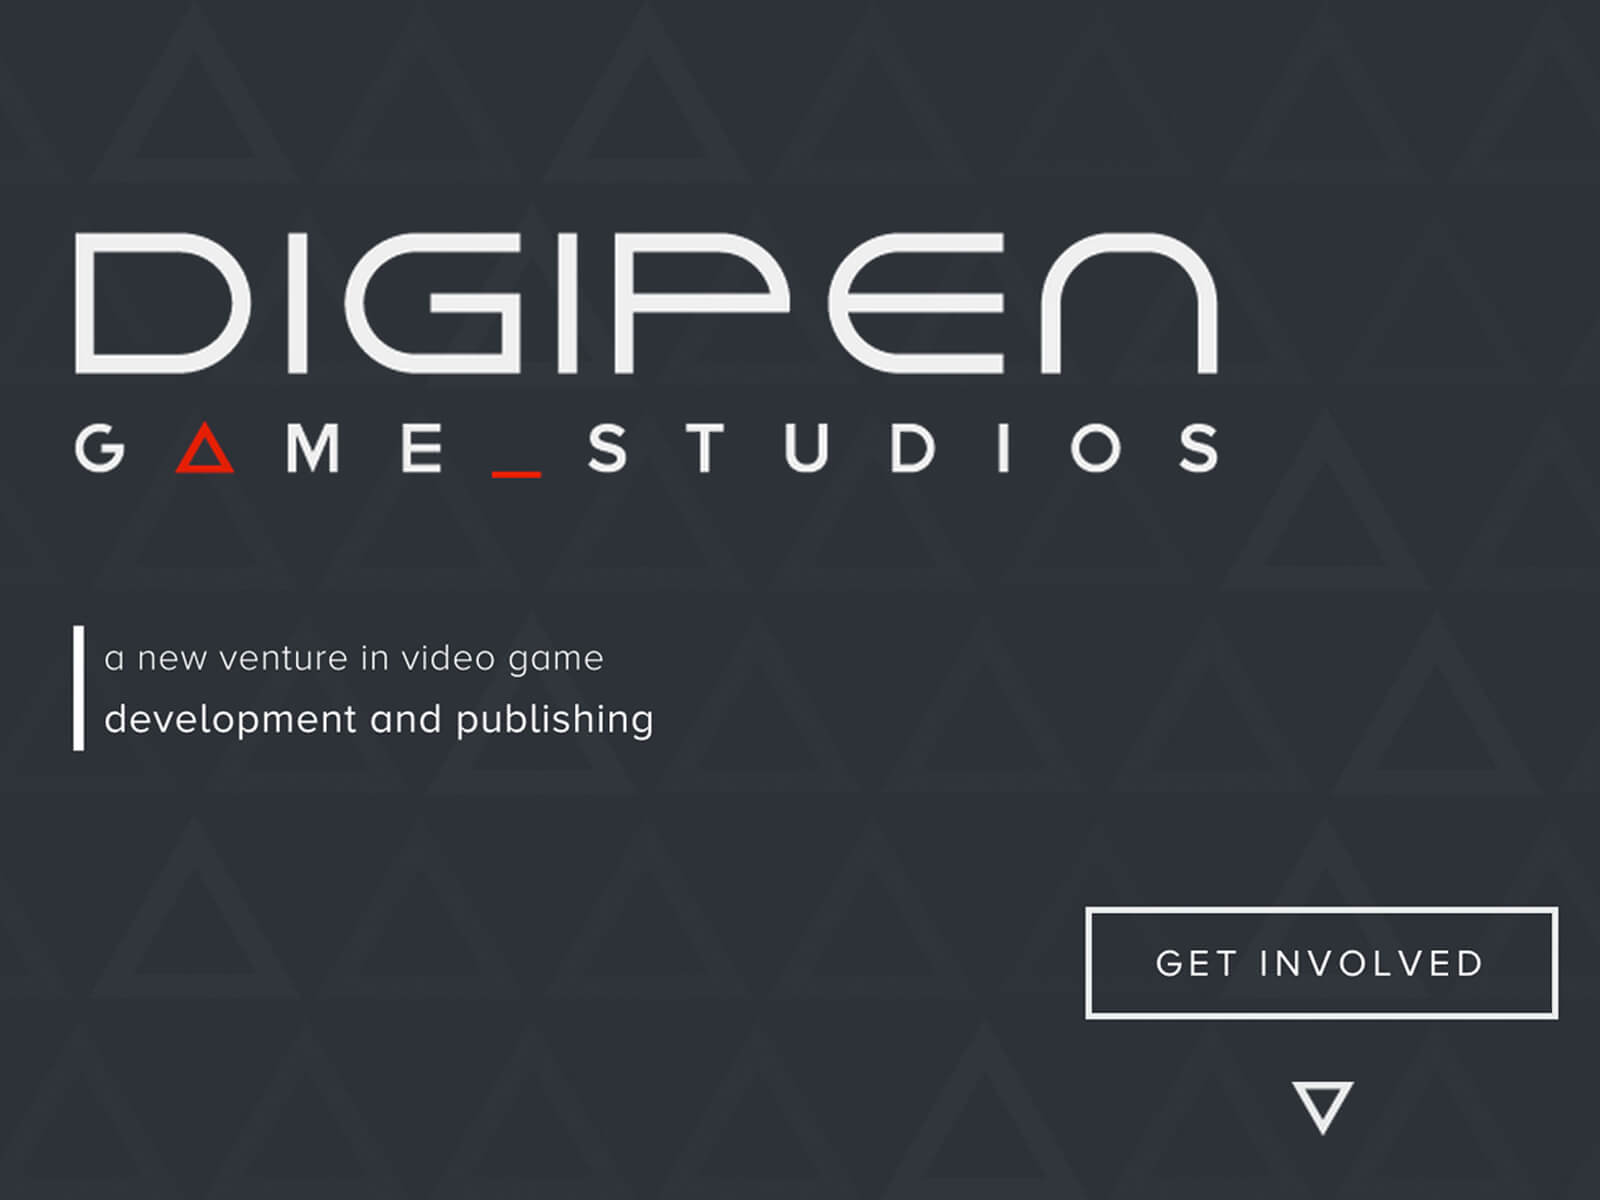 Screenshot of DigiPen Game Studios homepage with logo against a dark gray background with faint triangular outlines